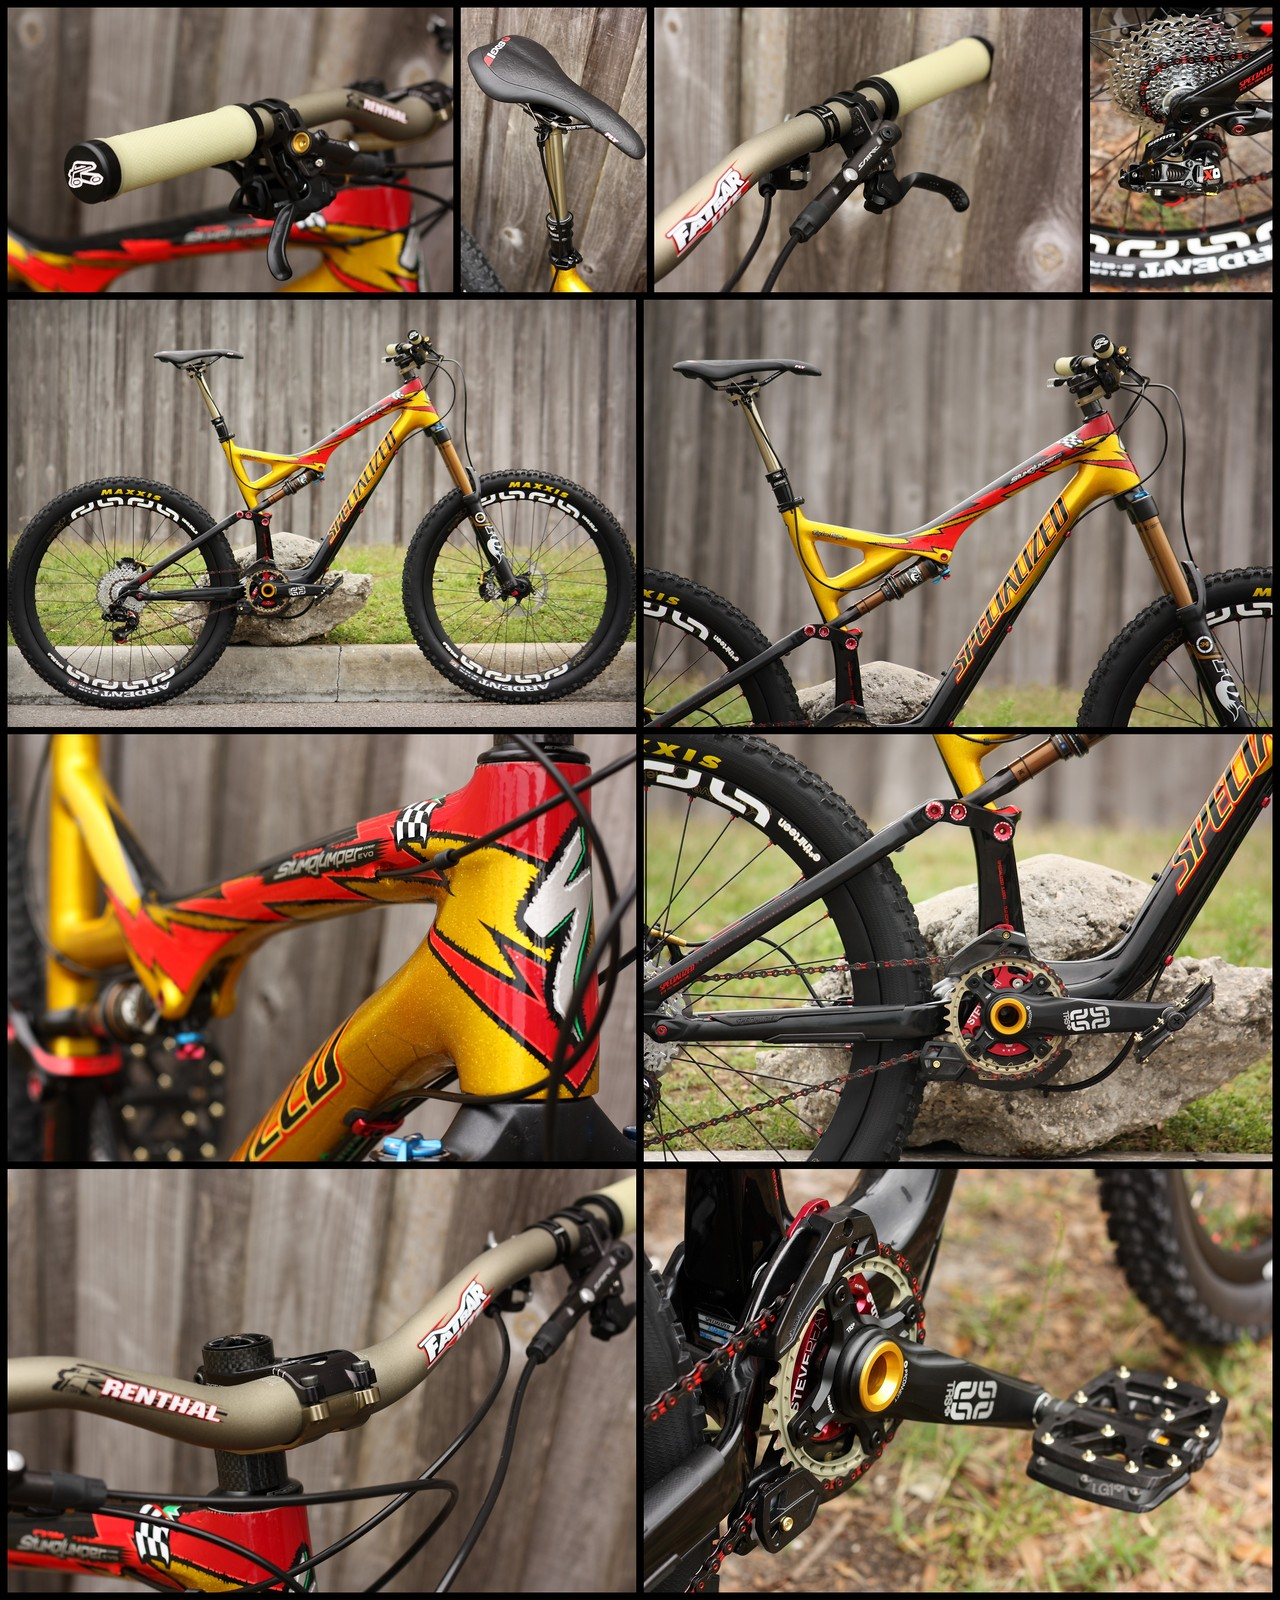 Custom Stumjumper Evo Carbon Limited Troy Lee Design Bike built by Casey of AJs Bikes and Boards